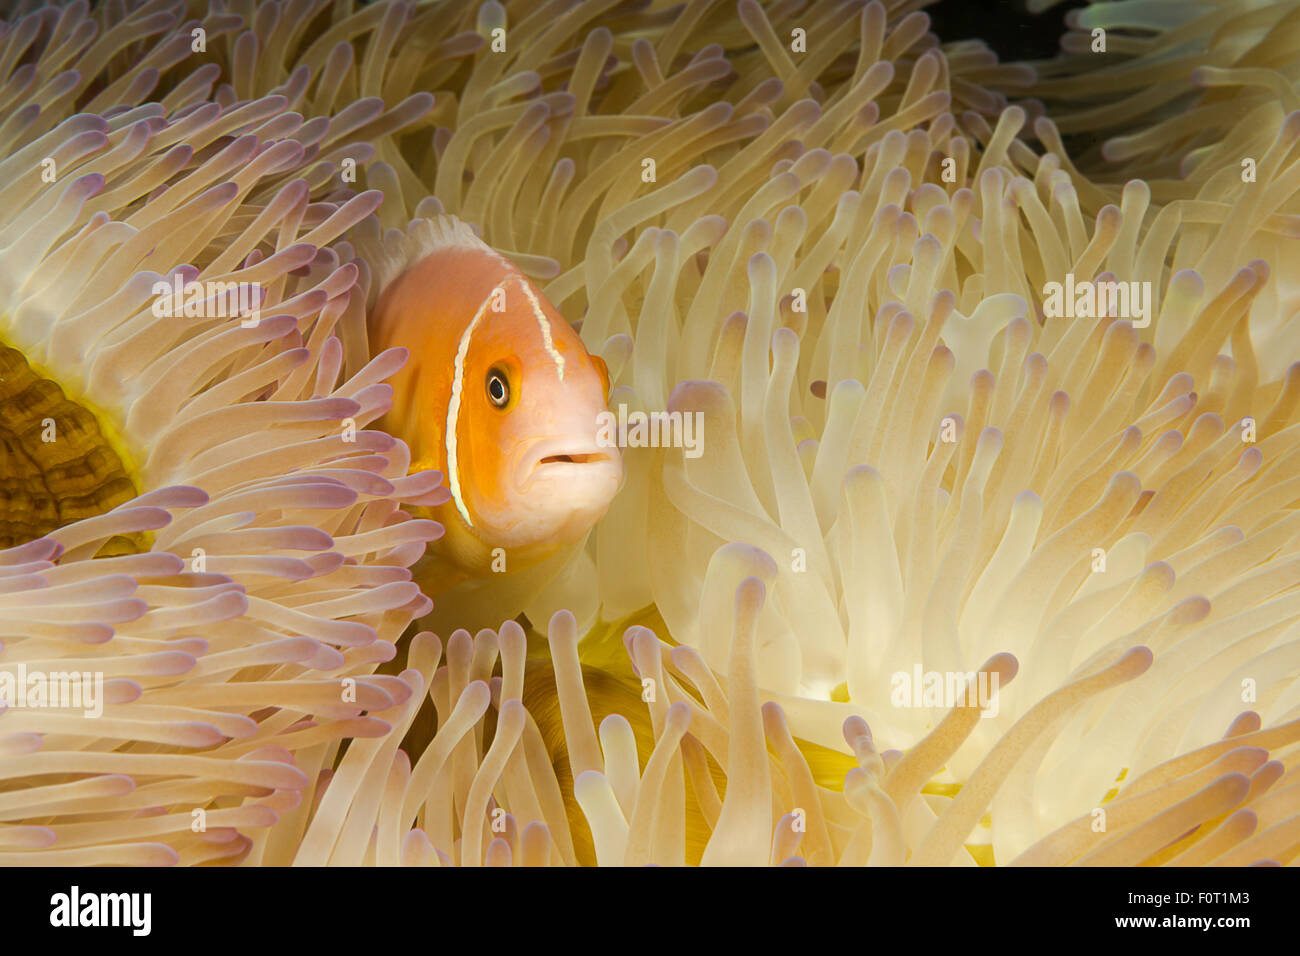 This common anemonefish, Amphiprion perideraion, is most often found associated with the anemone, Heteractis magnifica, - Stock Image